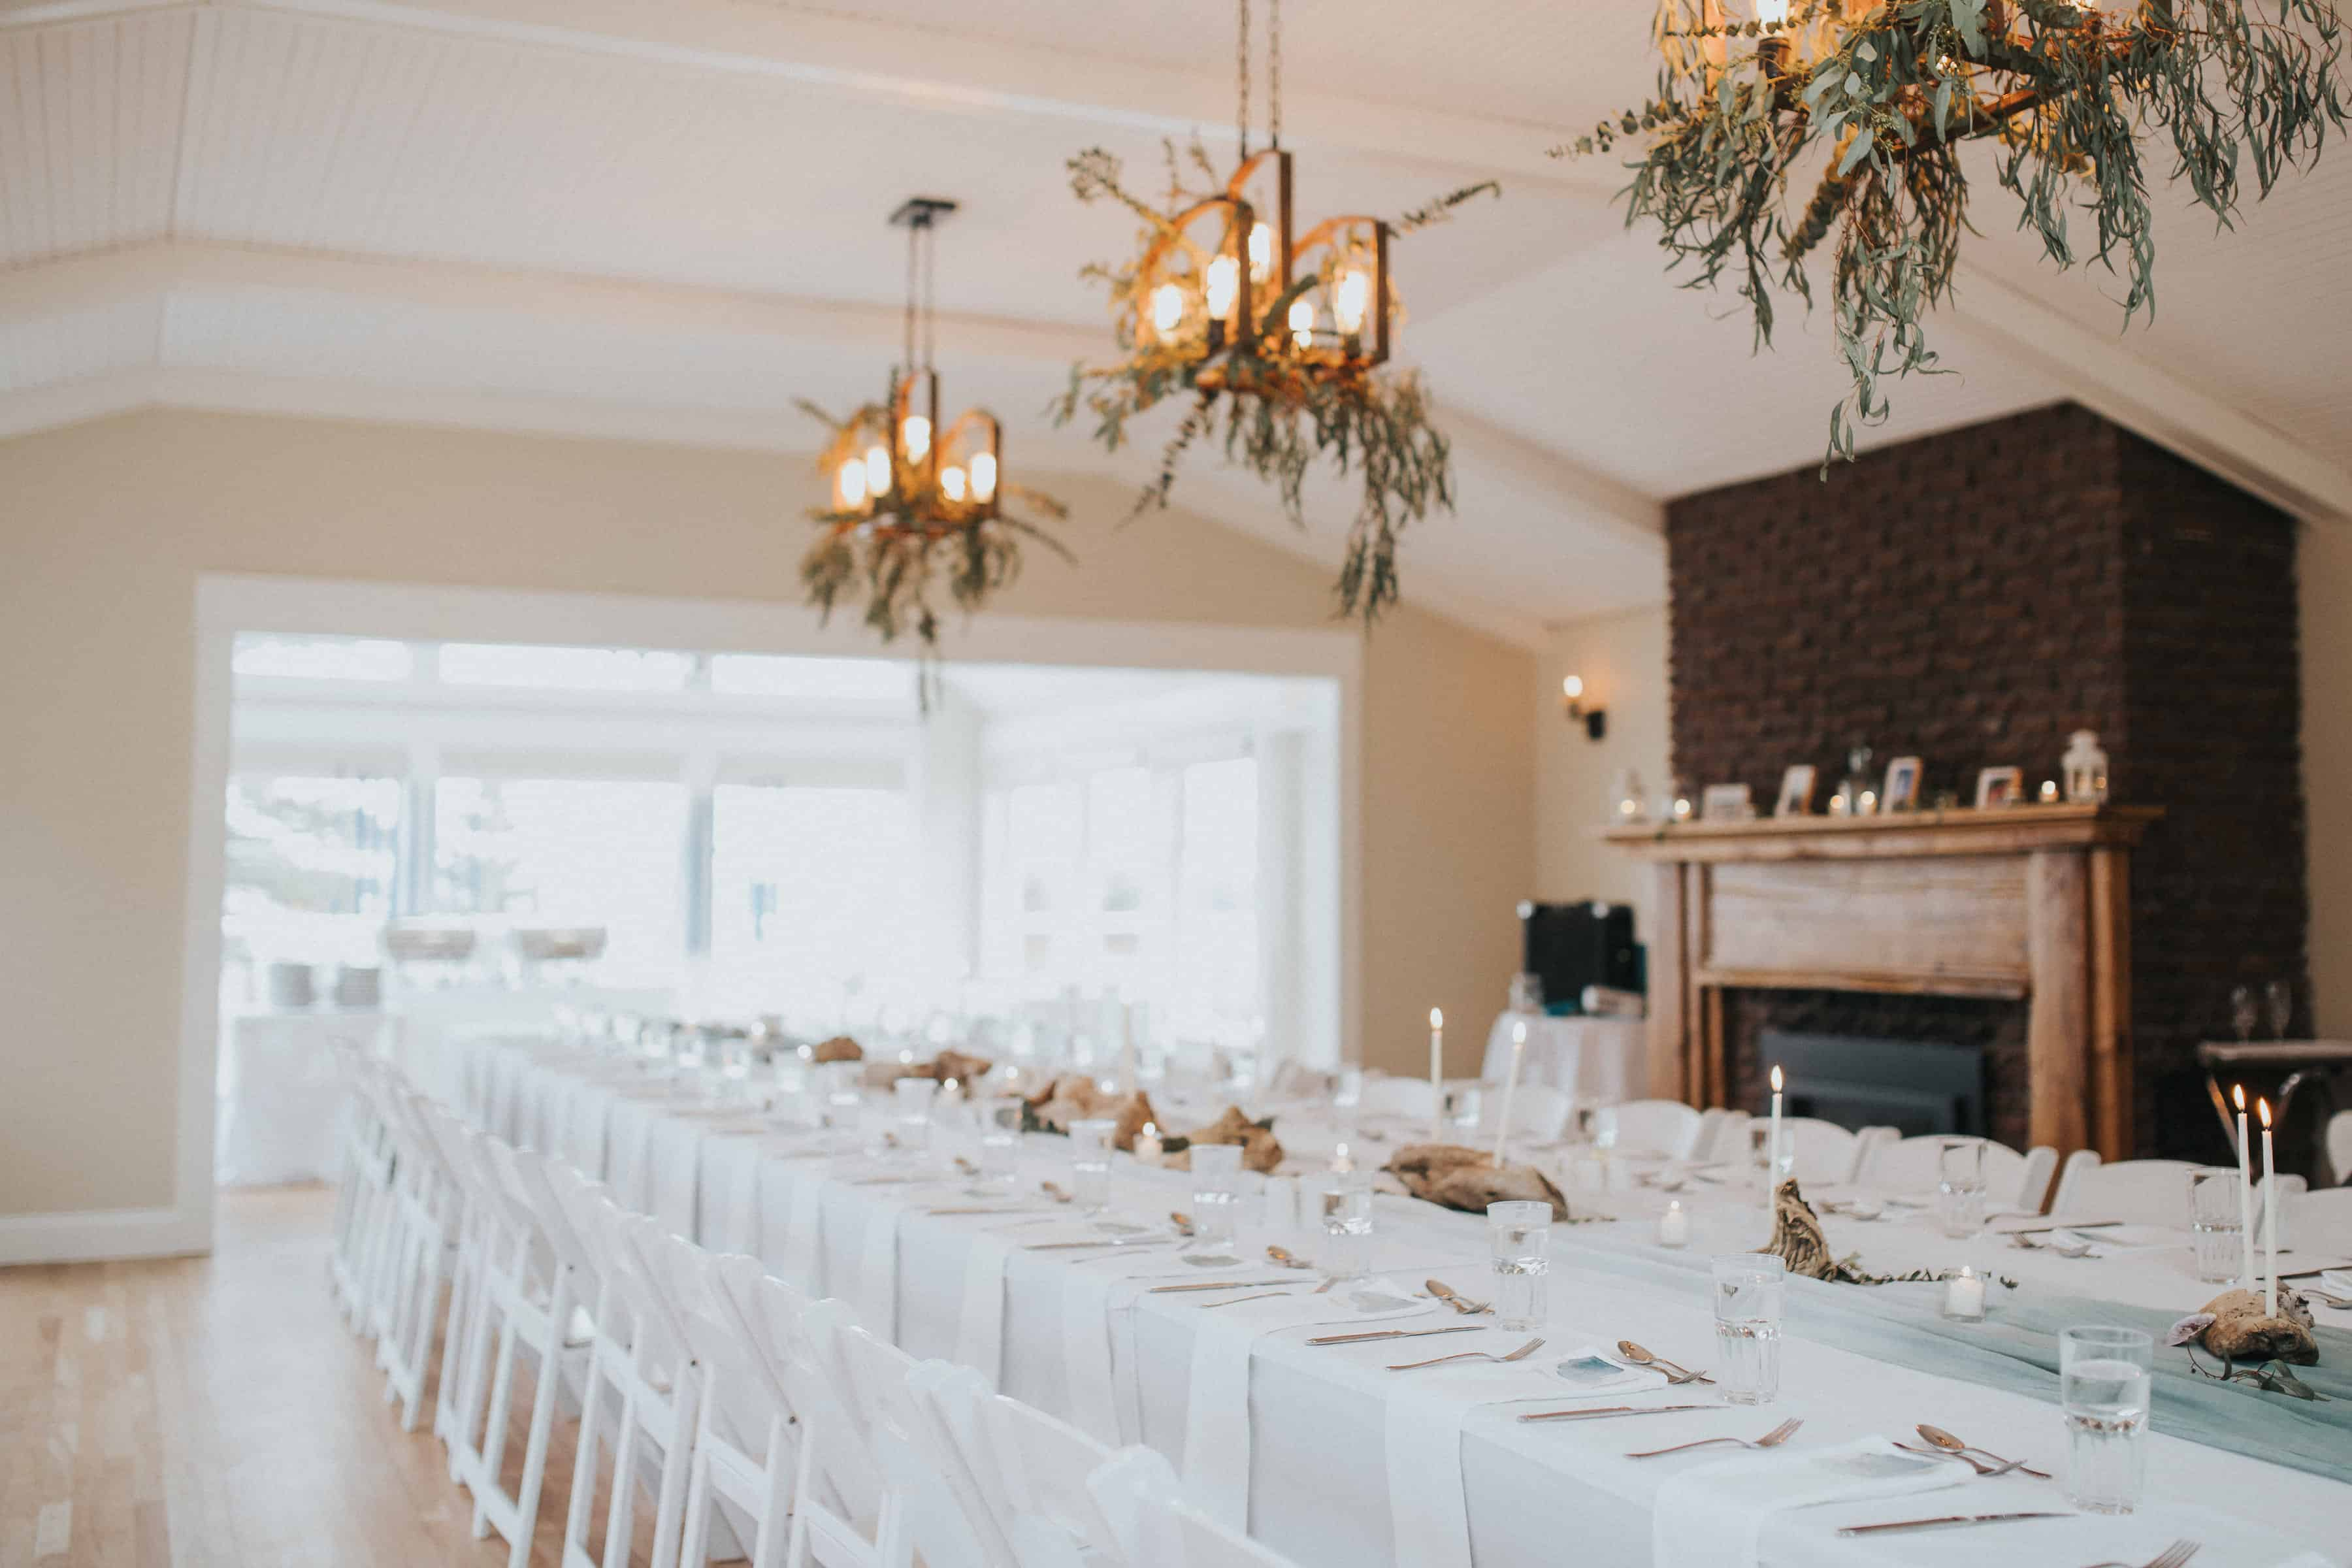 chair cover rentals halifax denim covers event planners weddings chelle wootten